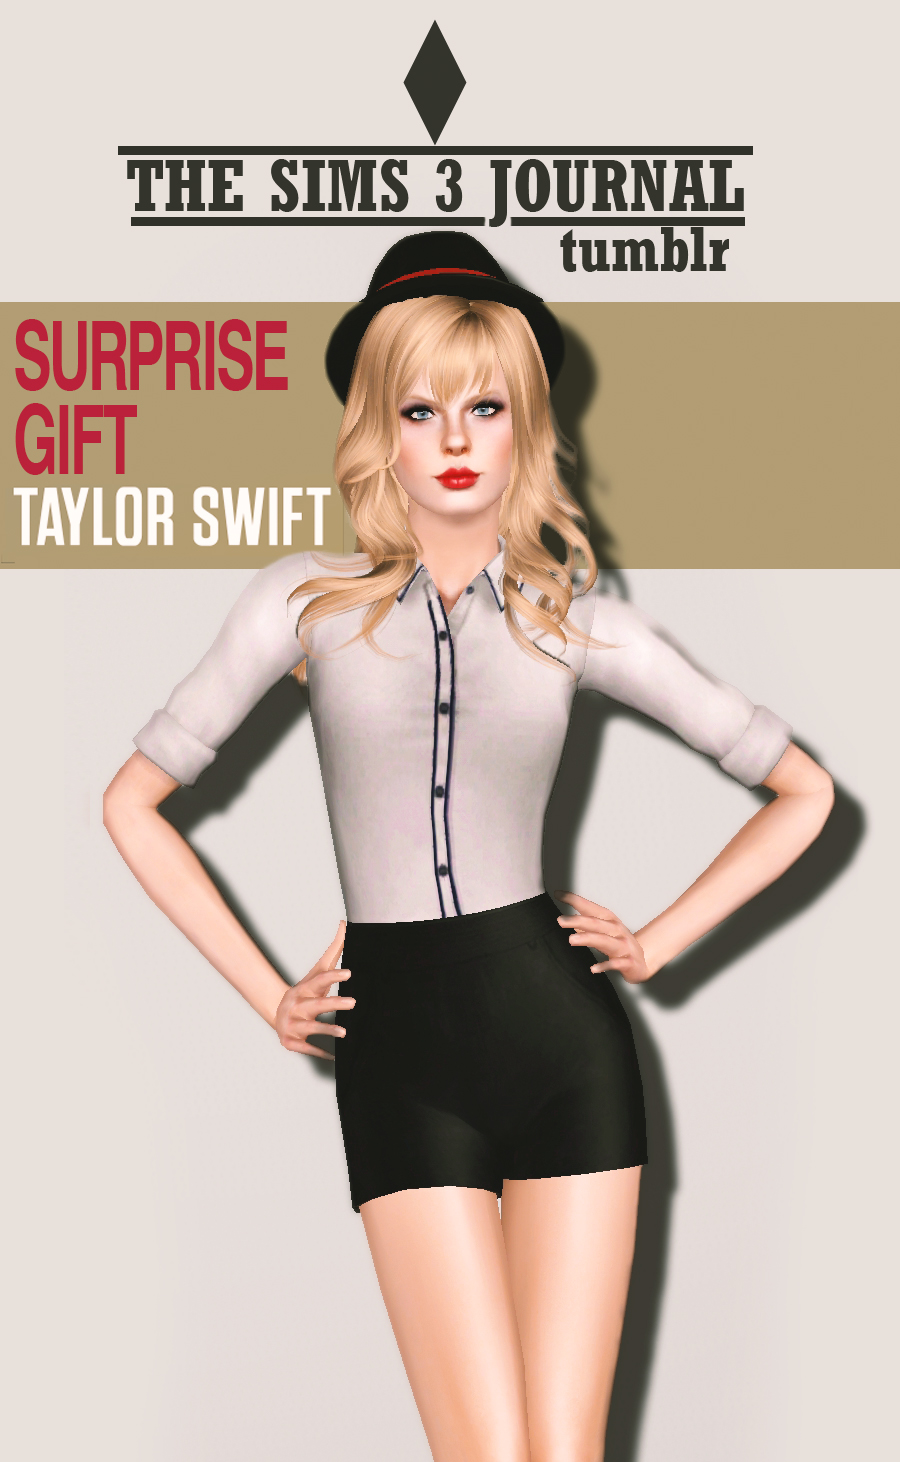 Taylor Swift by thesims3journal